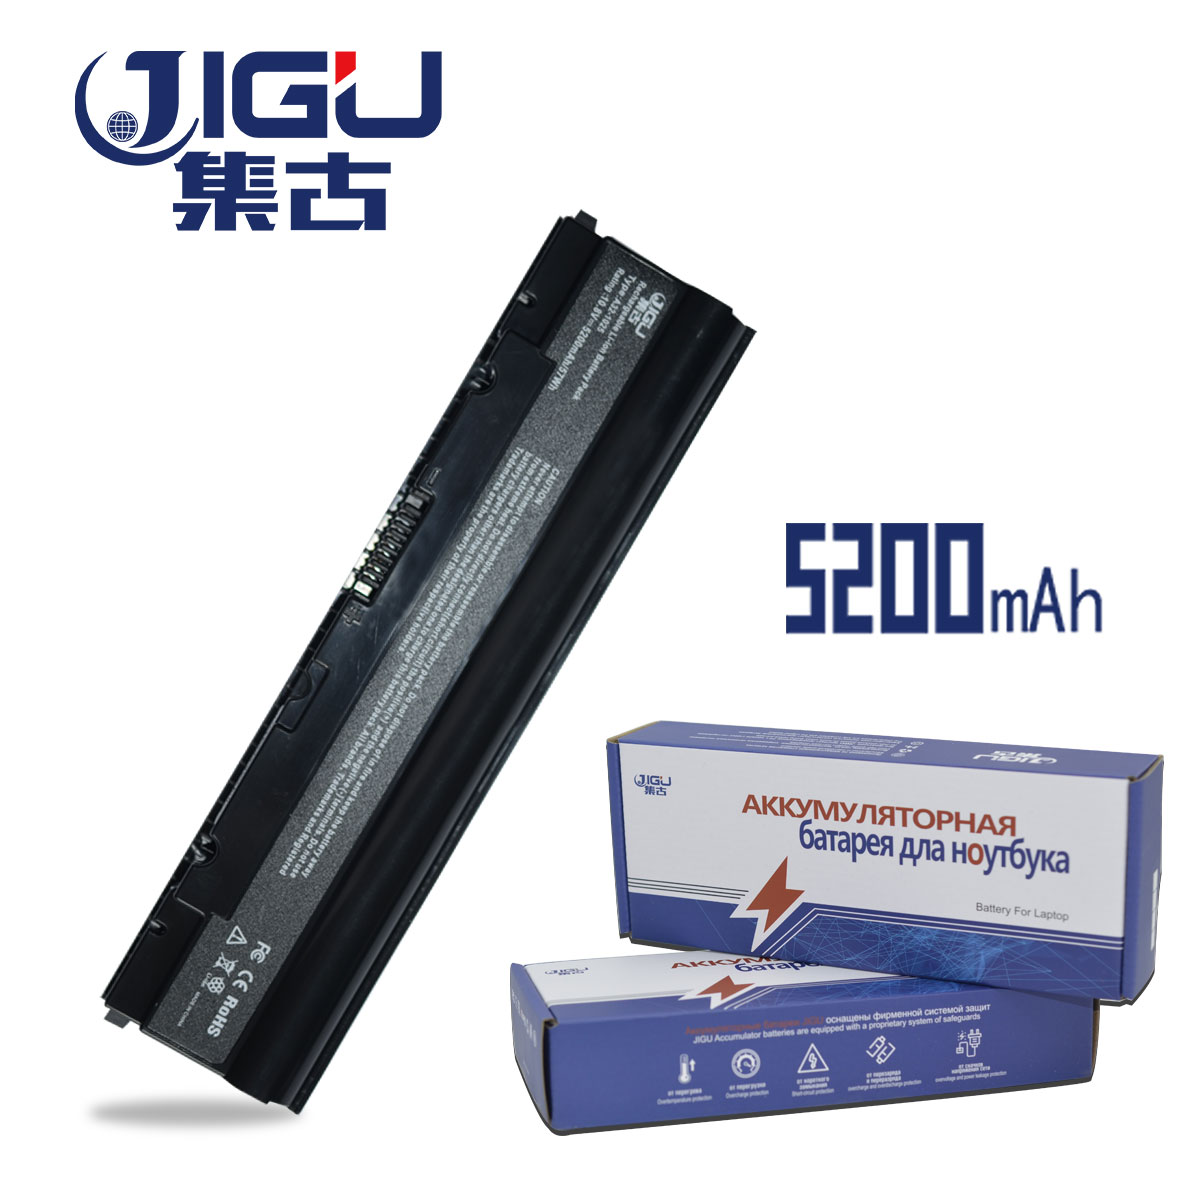 JIGU Laptop Battery For Asus A31-1025 A32-1025 For EPC 1025 1025C CE Eee Pc 1225 1225B C R052 R052C R052CE